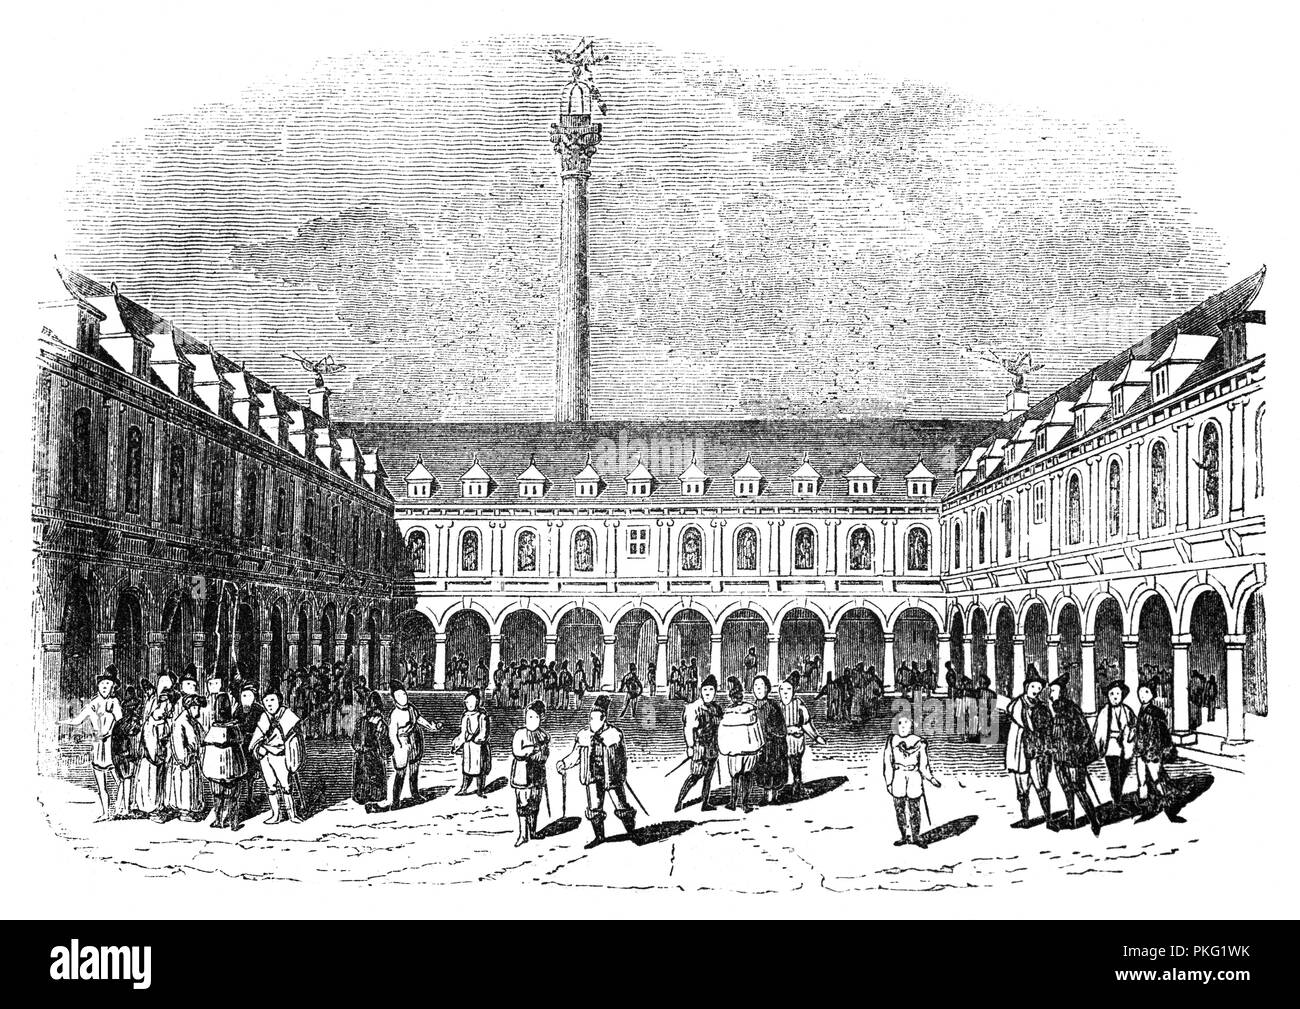 The courtyard of Sir Thomas Gresham's Exchange in London, England. Sir Thomas Gresham the Elder (1519–1579) was an English merchant and financier who acted on behalf of King Edward VI (1547–1553 and Elizabeth I (1558–1603). In 1565 Gresham made a proposal to the City's Court of Aldermen to build a bourse or exchange – what became the Royal Exchange,  – on condition that the Corporation provided a suitable location. - Stock Image